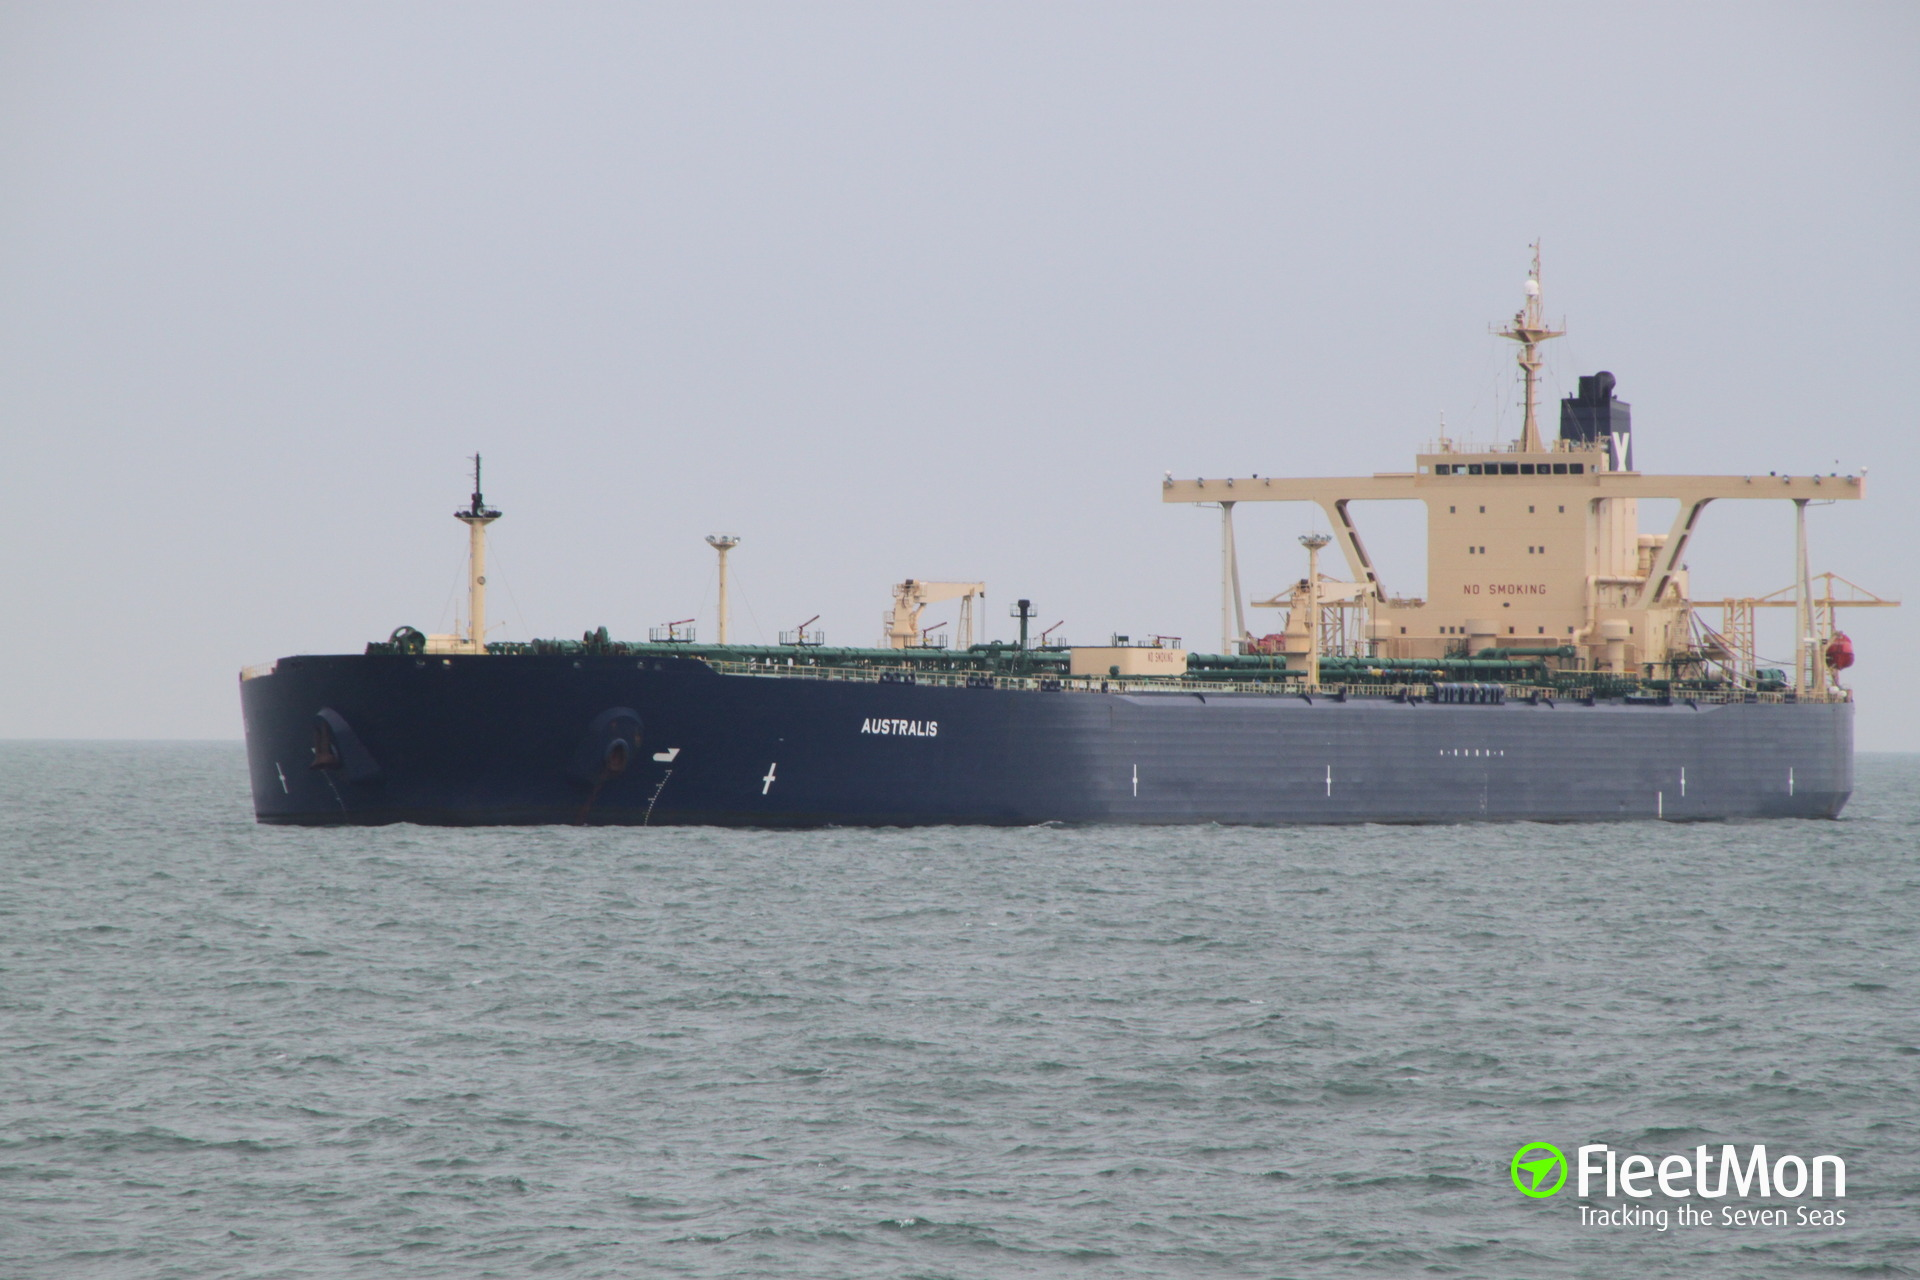 VLCC AUSTRALIS sunk Chinese fishing vessel, six crew missing, tanker diverted to port